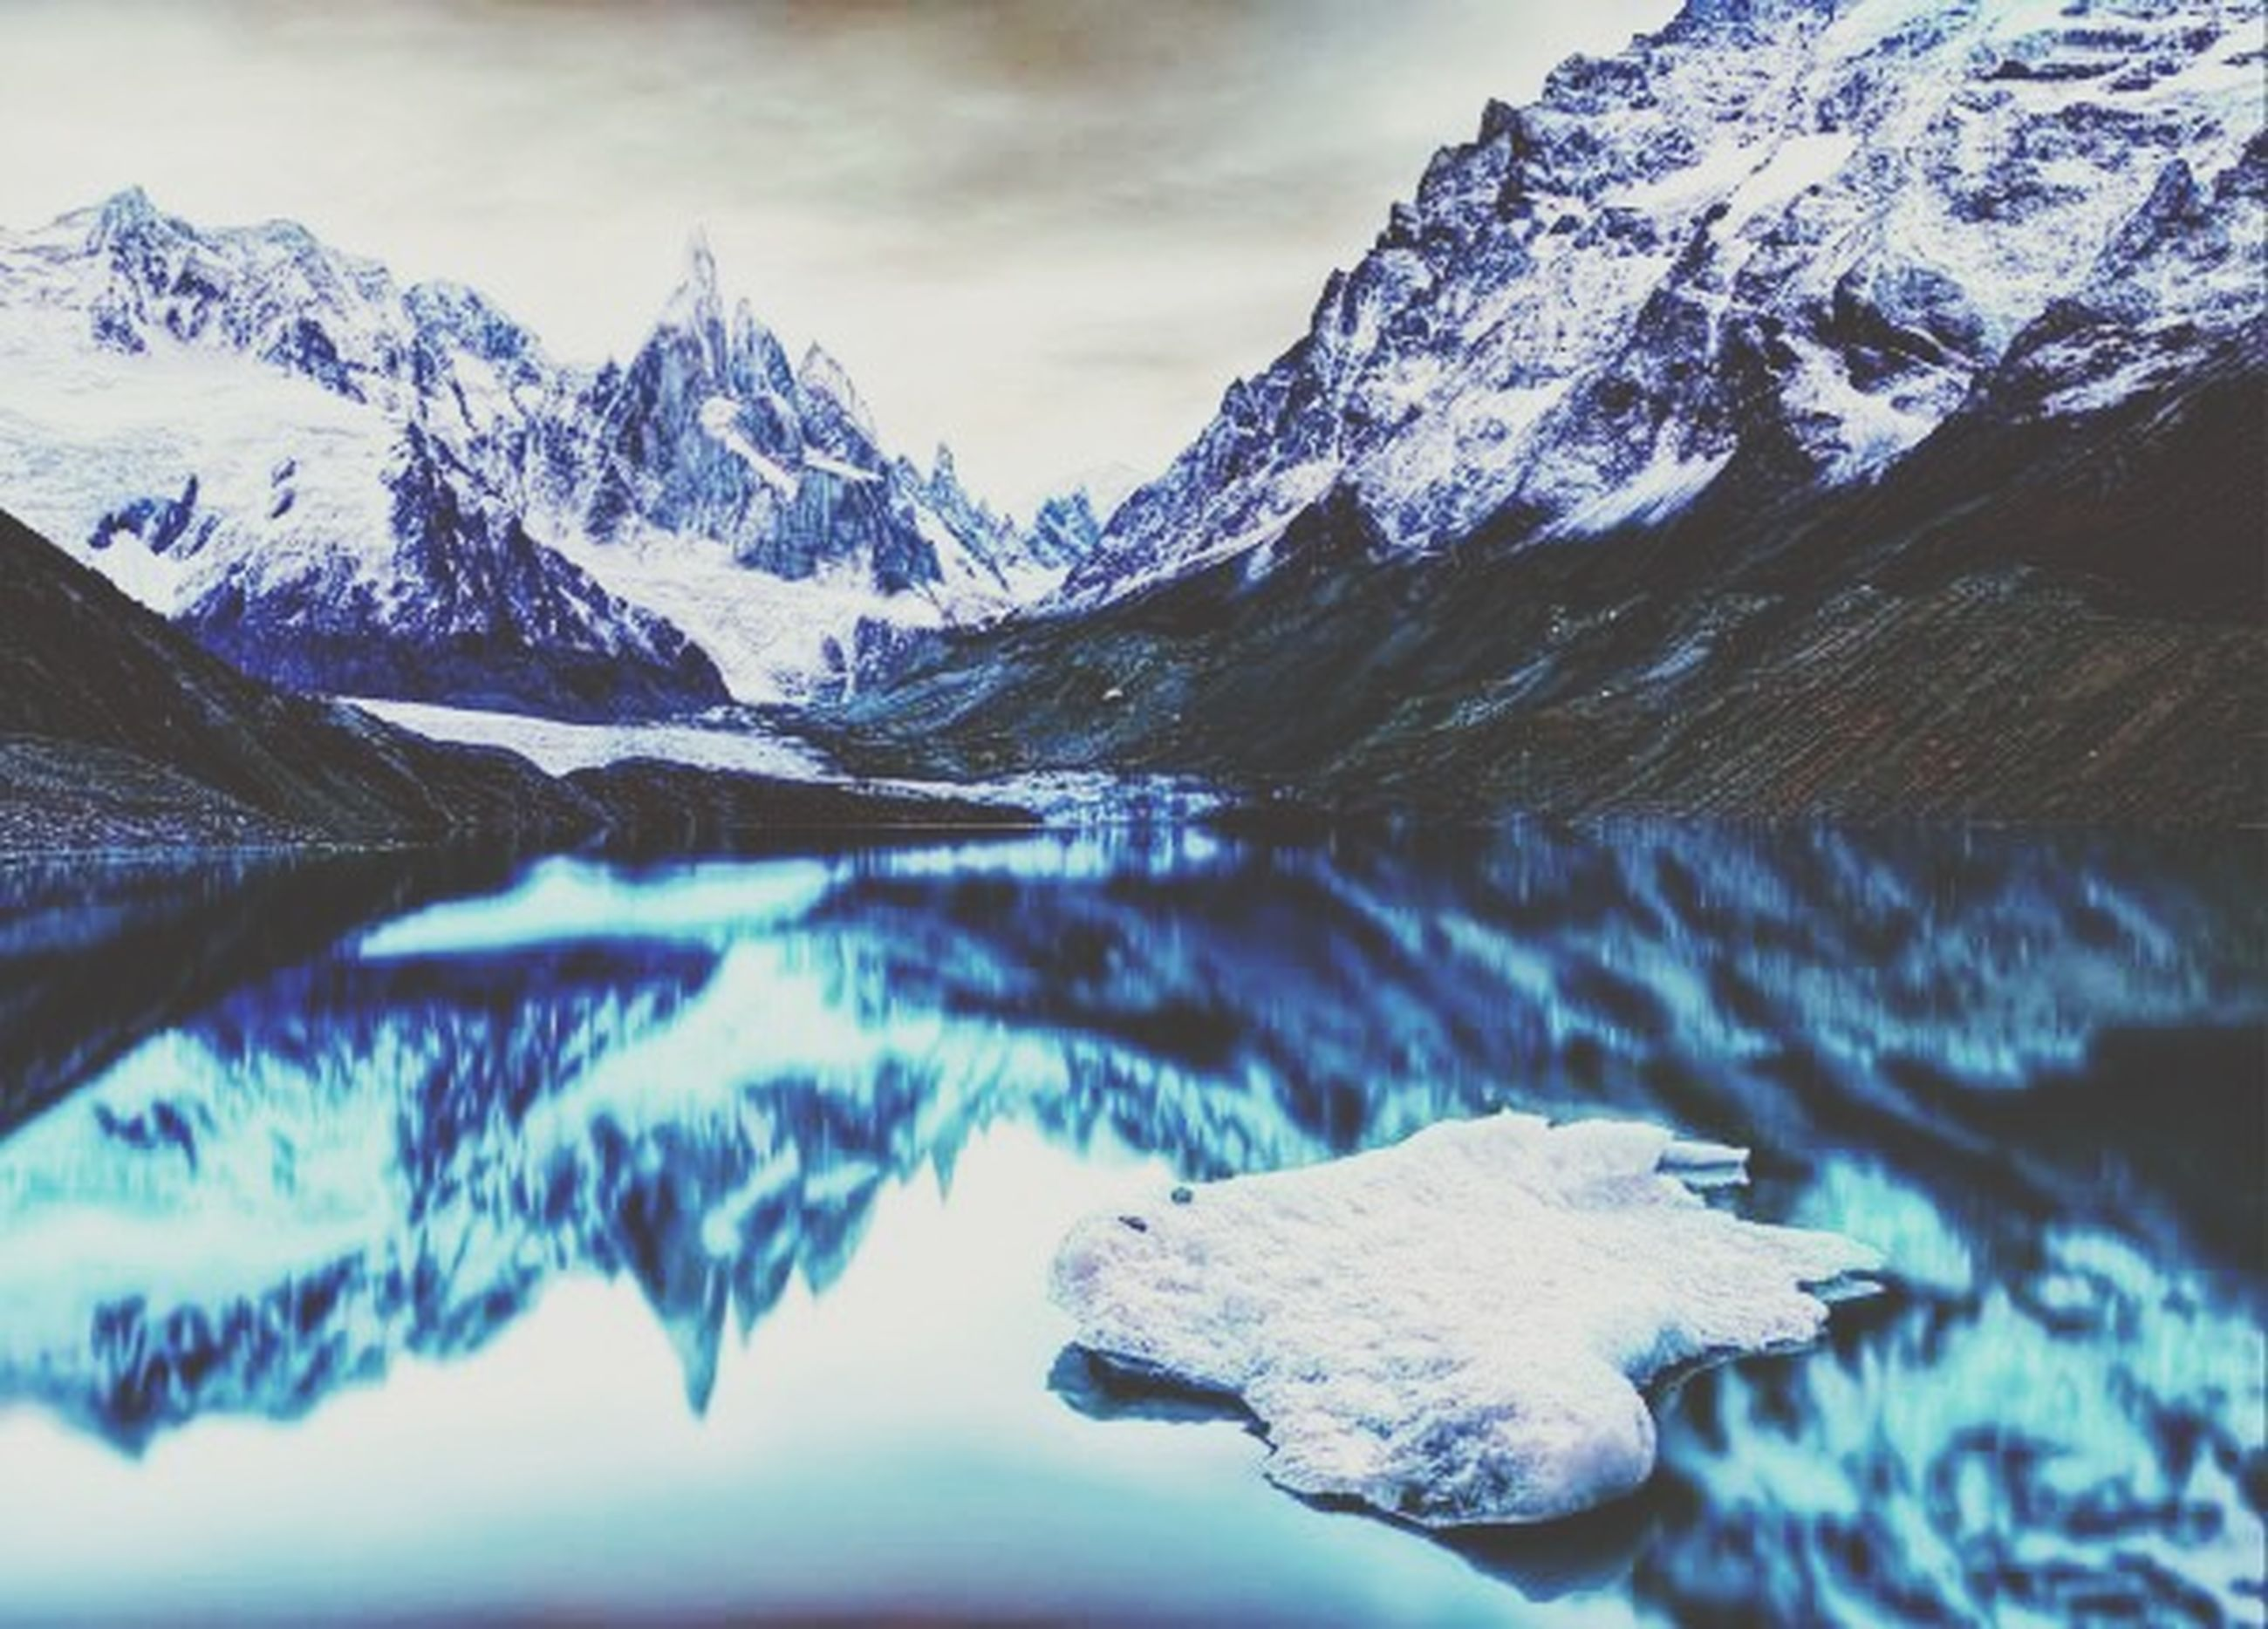 snow, winter, cold temperature, mountain, water, tranquil scene, tranquility, lake, scenics, season, beauty in nature, mountain range, snowcapped mountain, nature, reflection, frozen, weather, waterfront, sky, ice